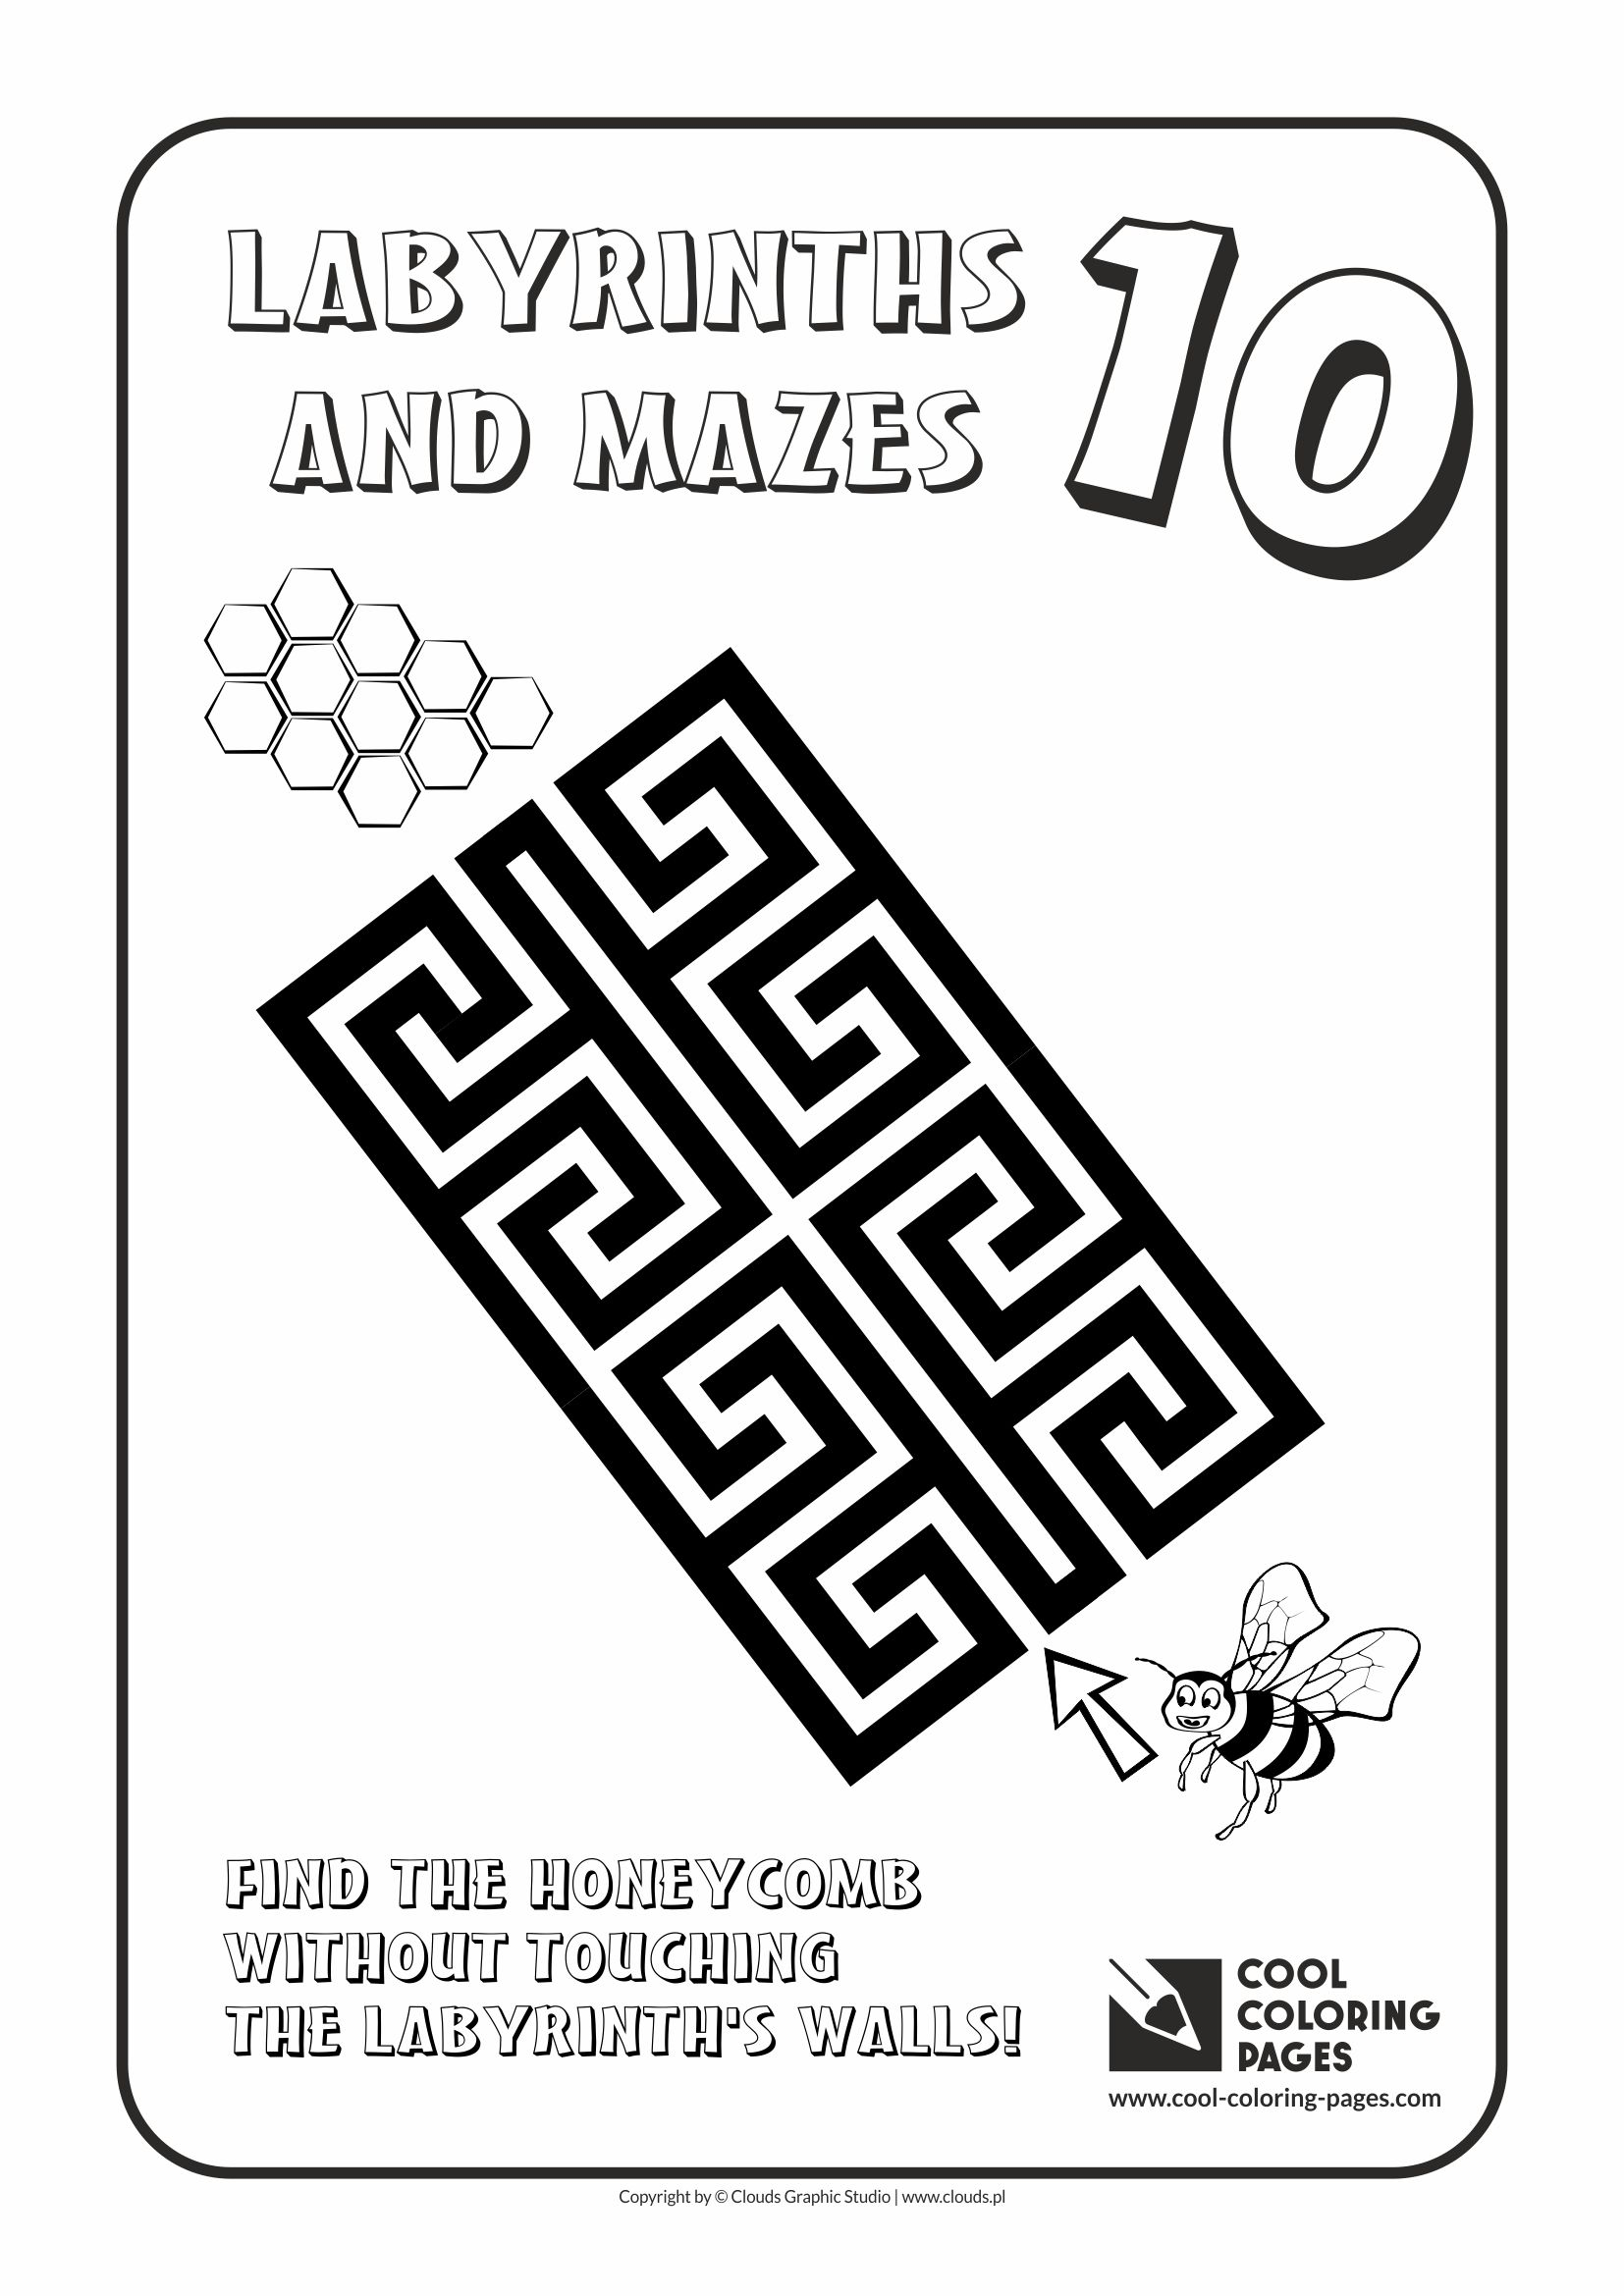 Cool Coloring Pages - Labyrinths and mazes / Maze no 10